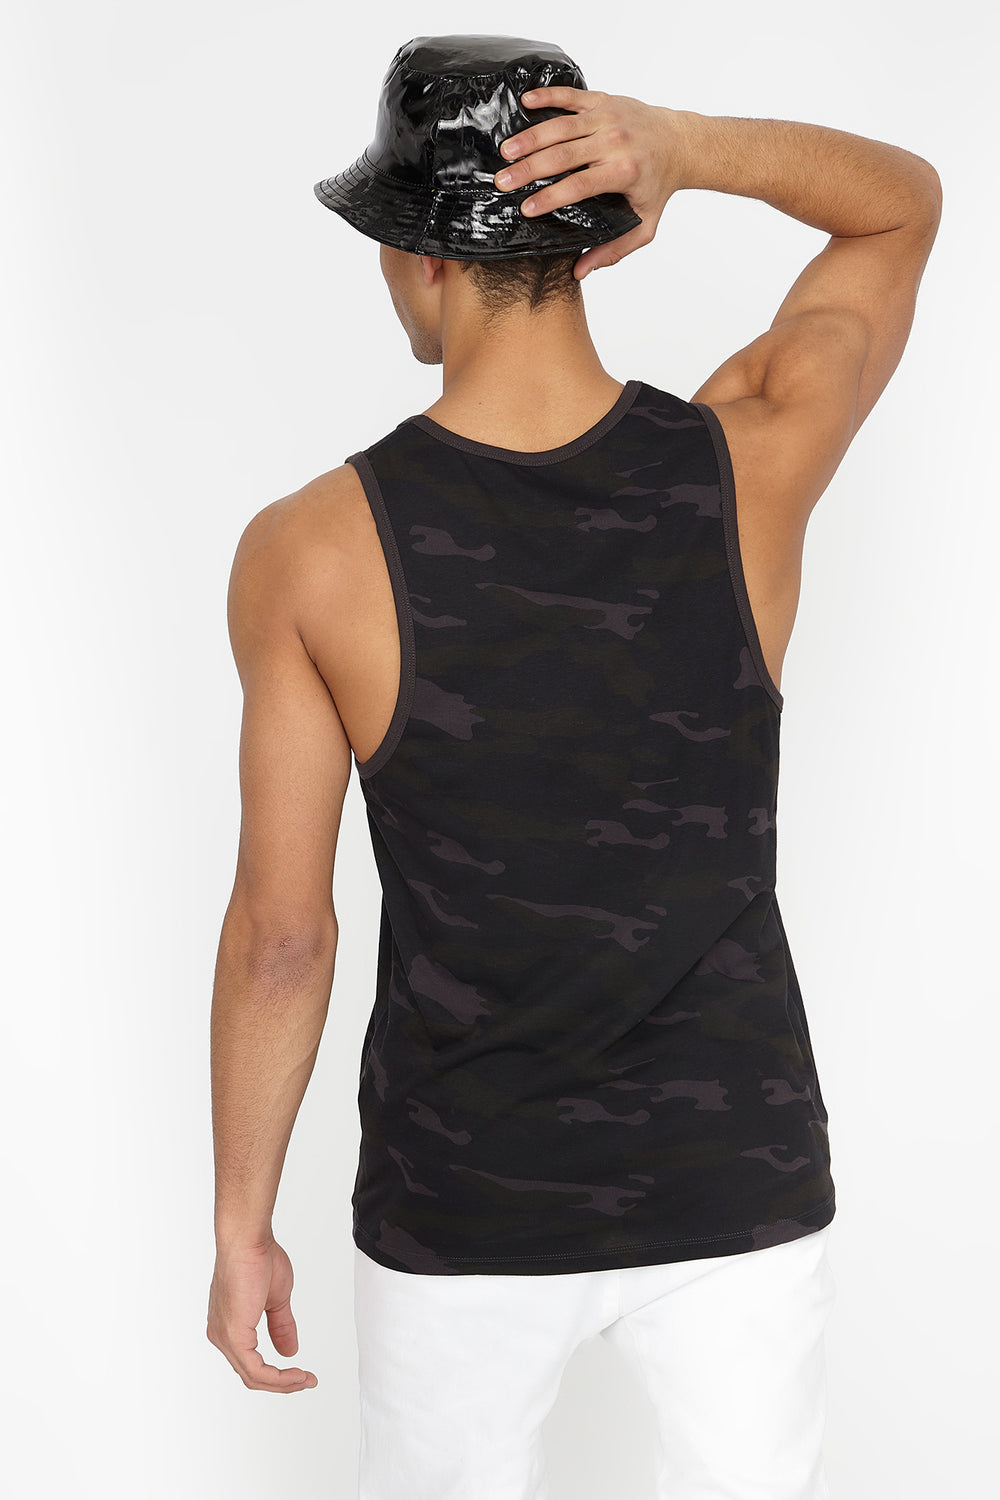 Camo 100 Graphic Tank Black with White